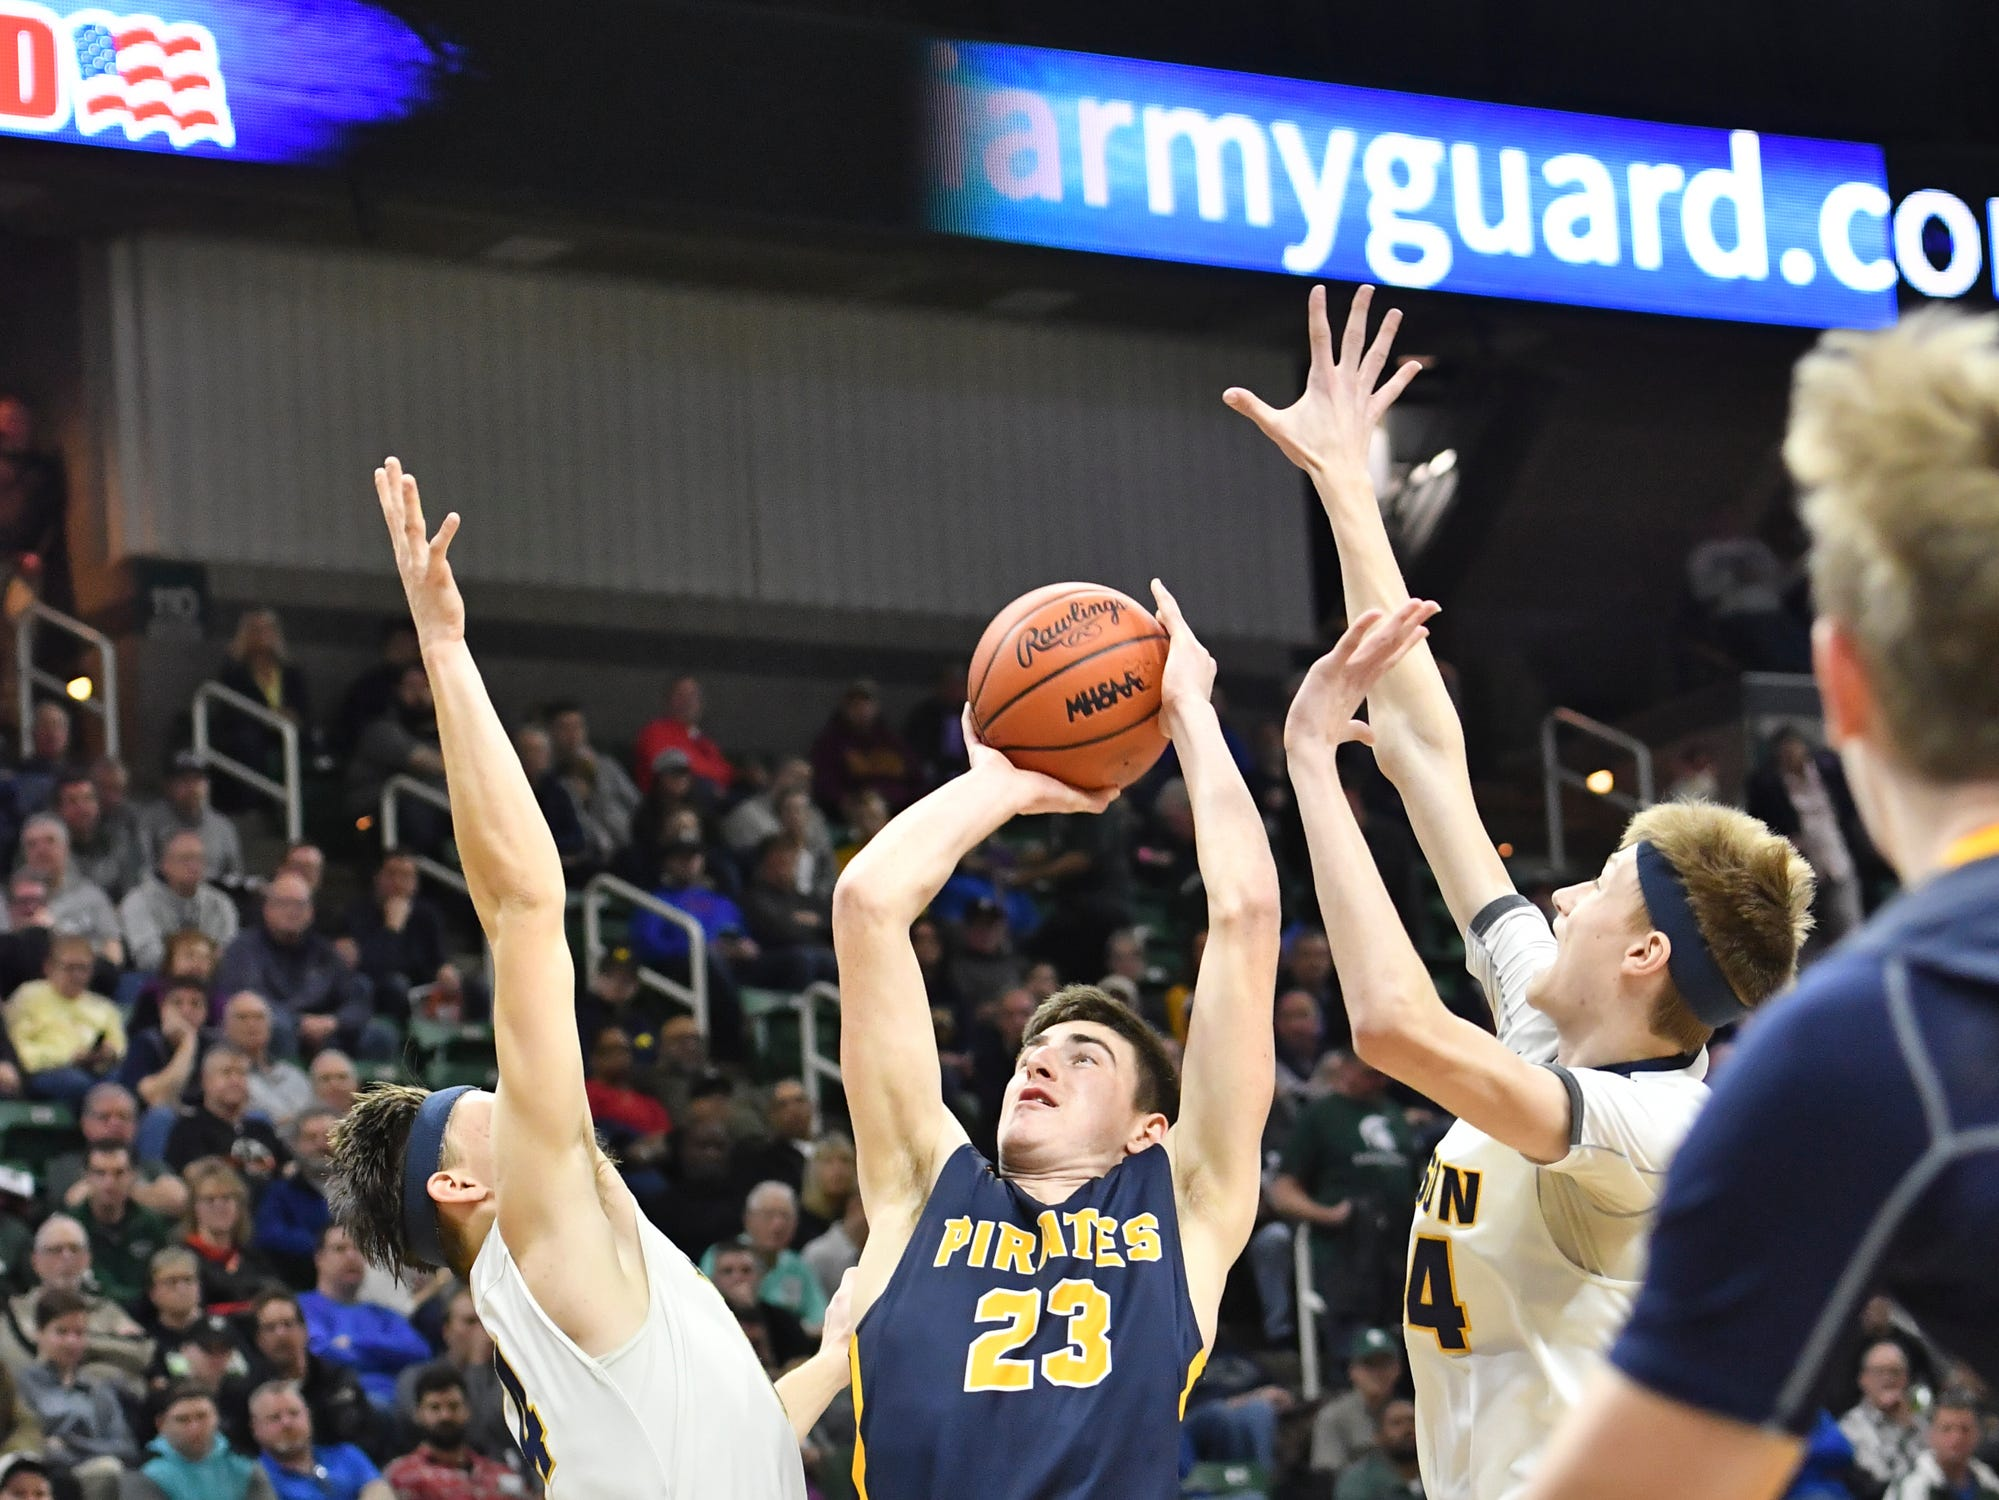 J.C. Steinman of P-W shoots from inside the paint against Erie-Mason Thursday, March 14, 2019, during the MHSAA Div. 3 state semifinal at the Breslin Center in East Lansing.